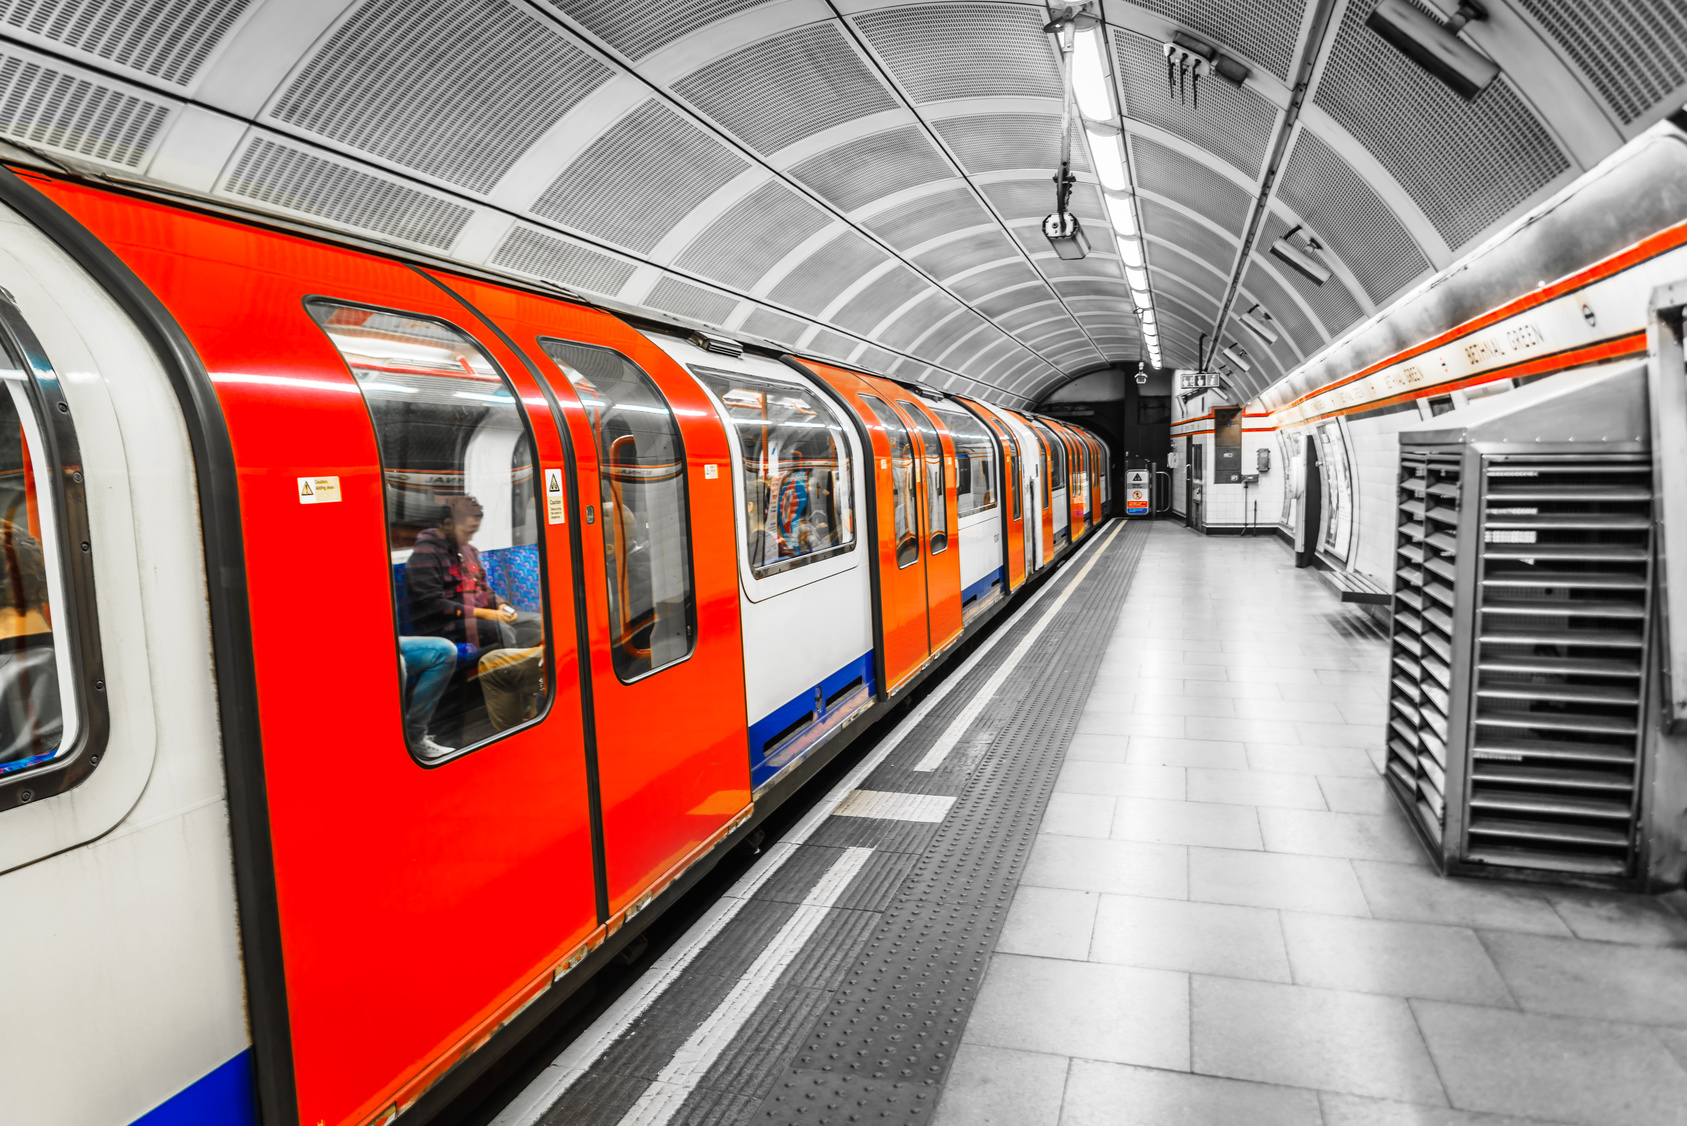 London Underground users charged £365m for incomplete journeys